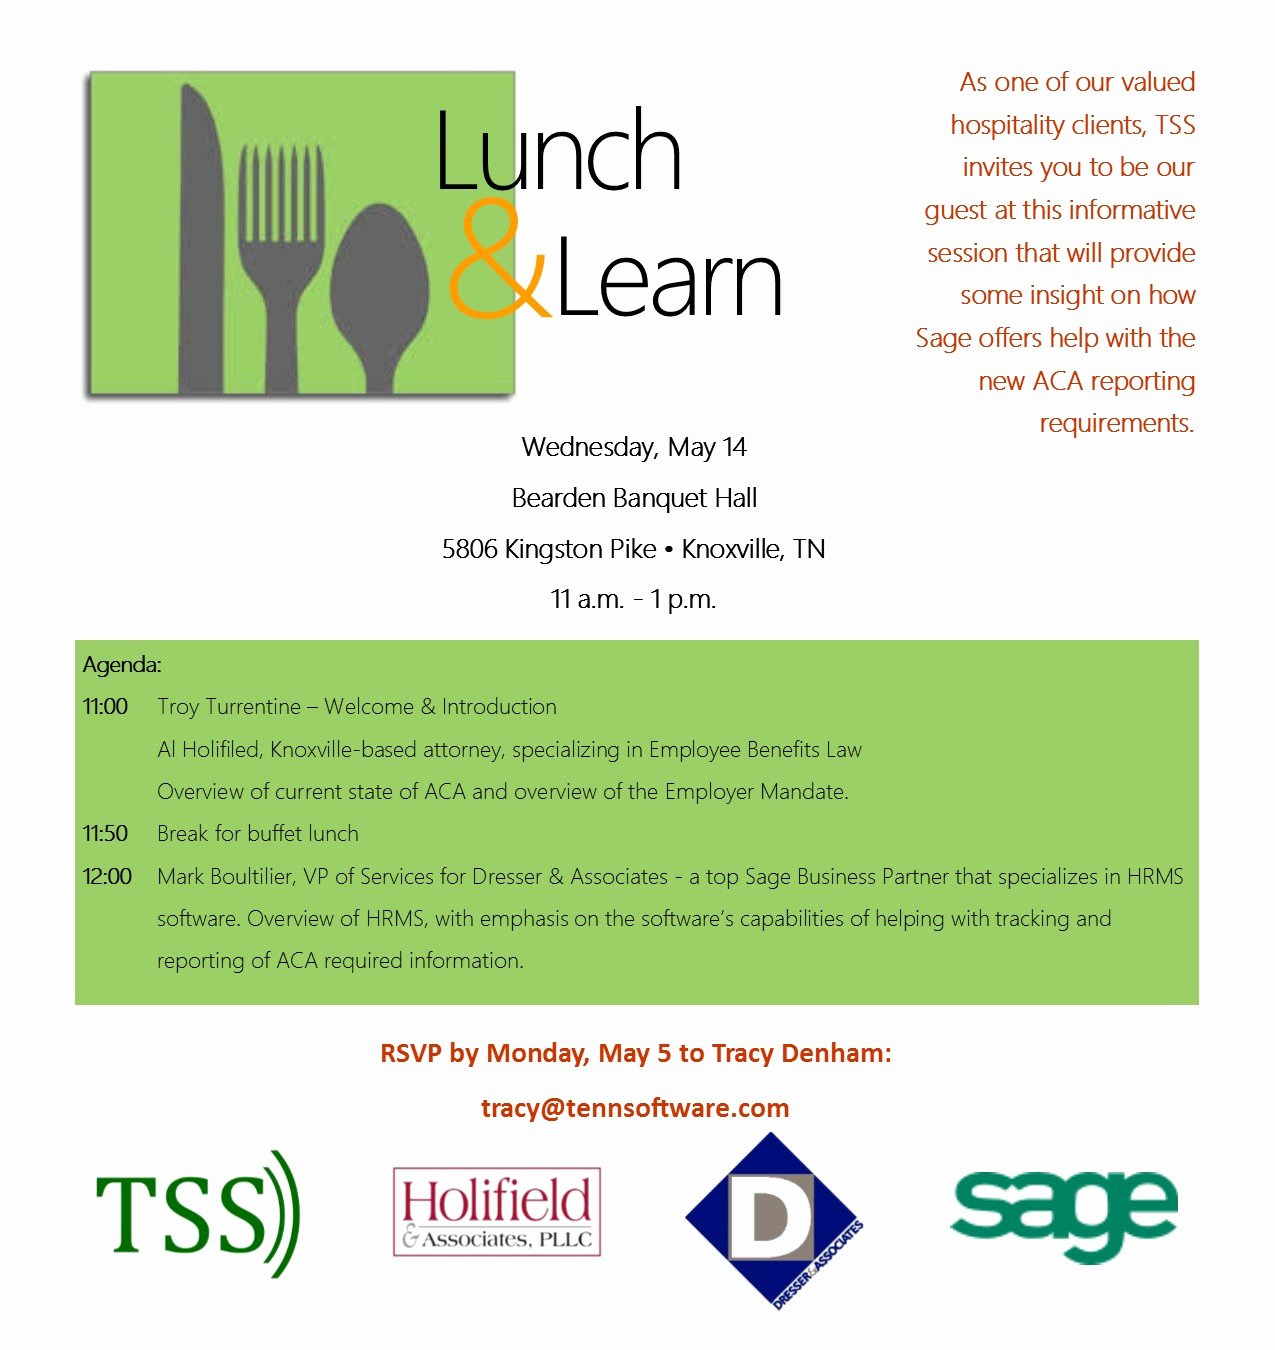 Lunch and Learn Invites Unique Hospitality Industry Lunch & Learn Aca Reporting – Tss